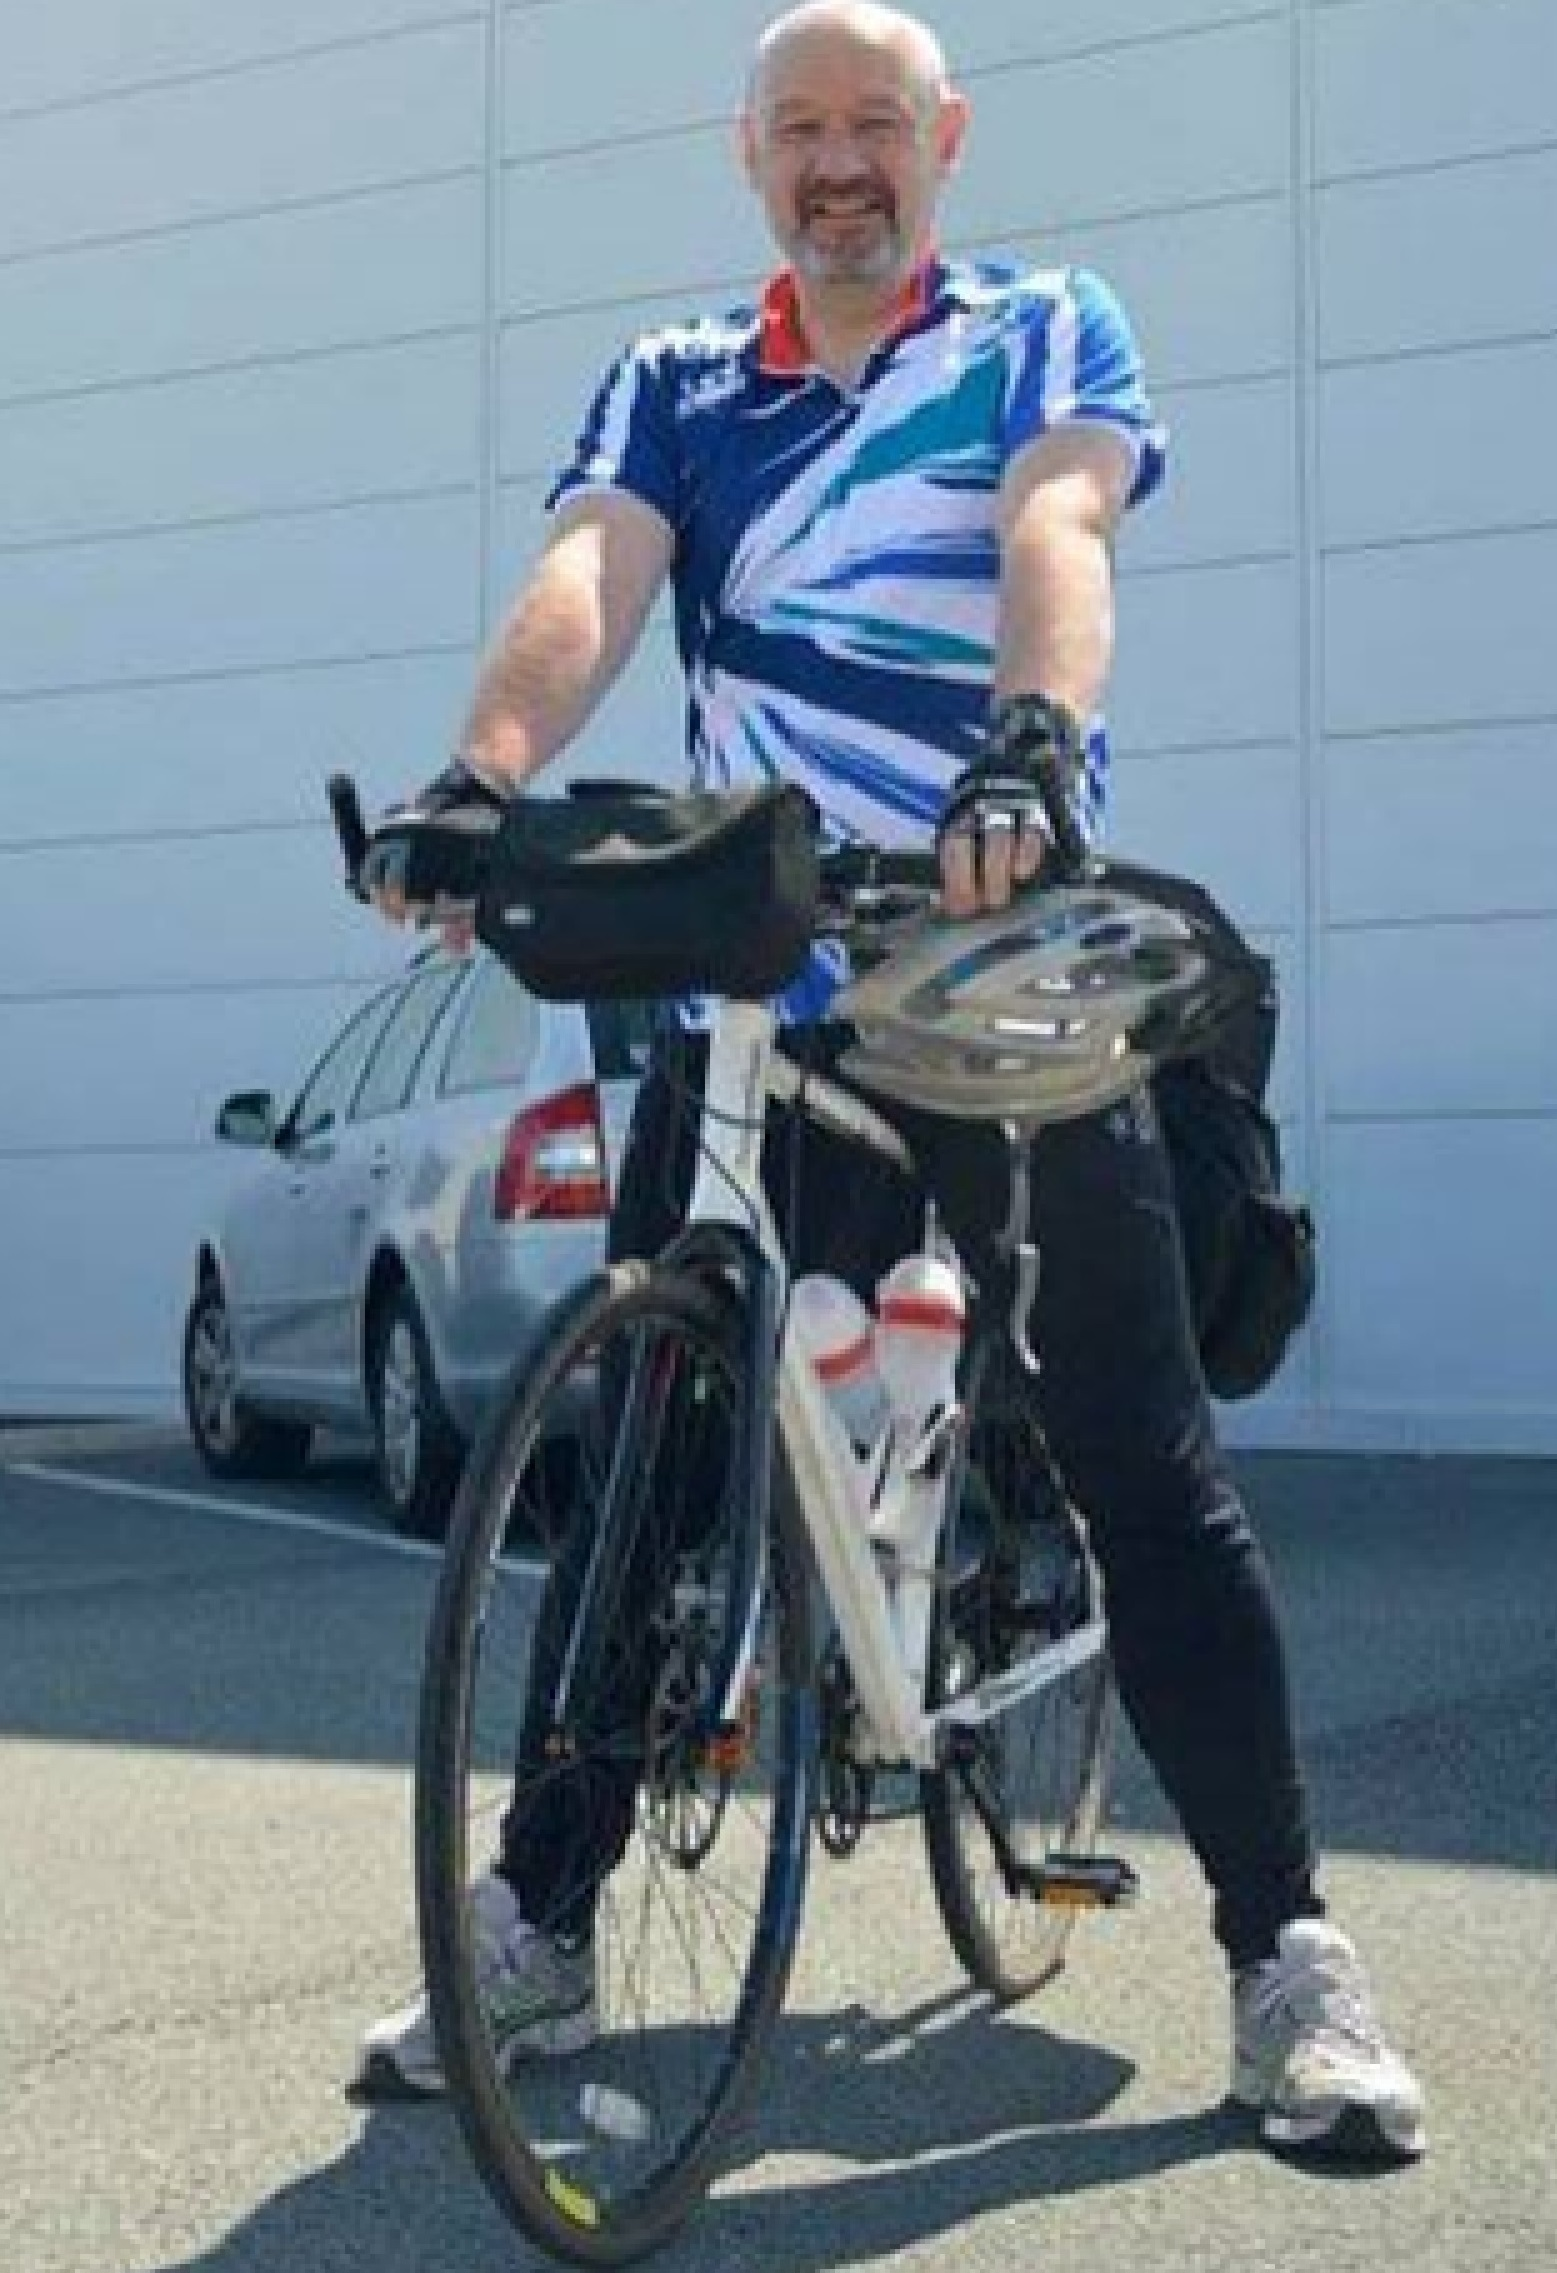 RIDE: Stuart Stephenson, from Northallerton, is cycling around all 20 Premier League grounds to raise money for Cancer Research